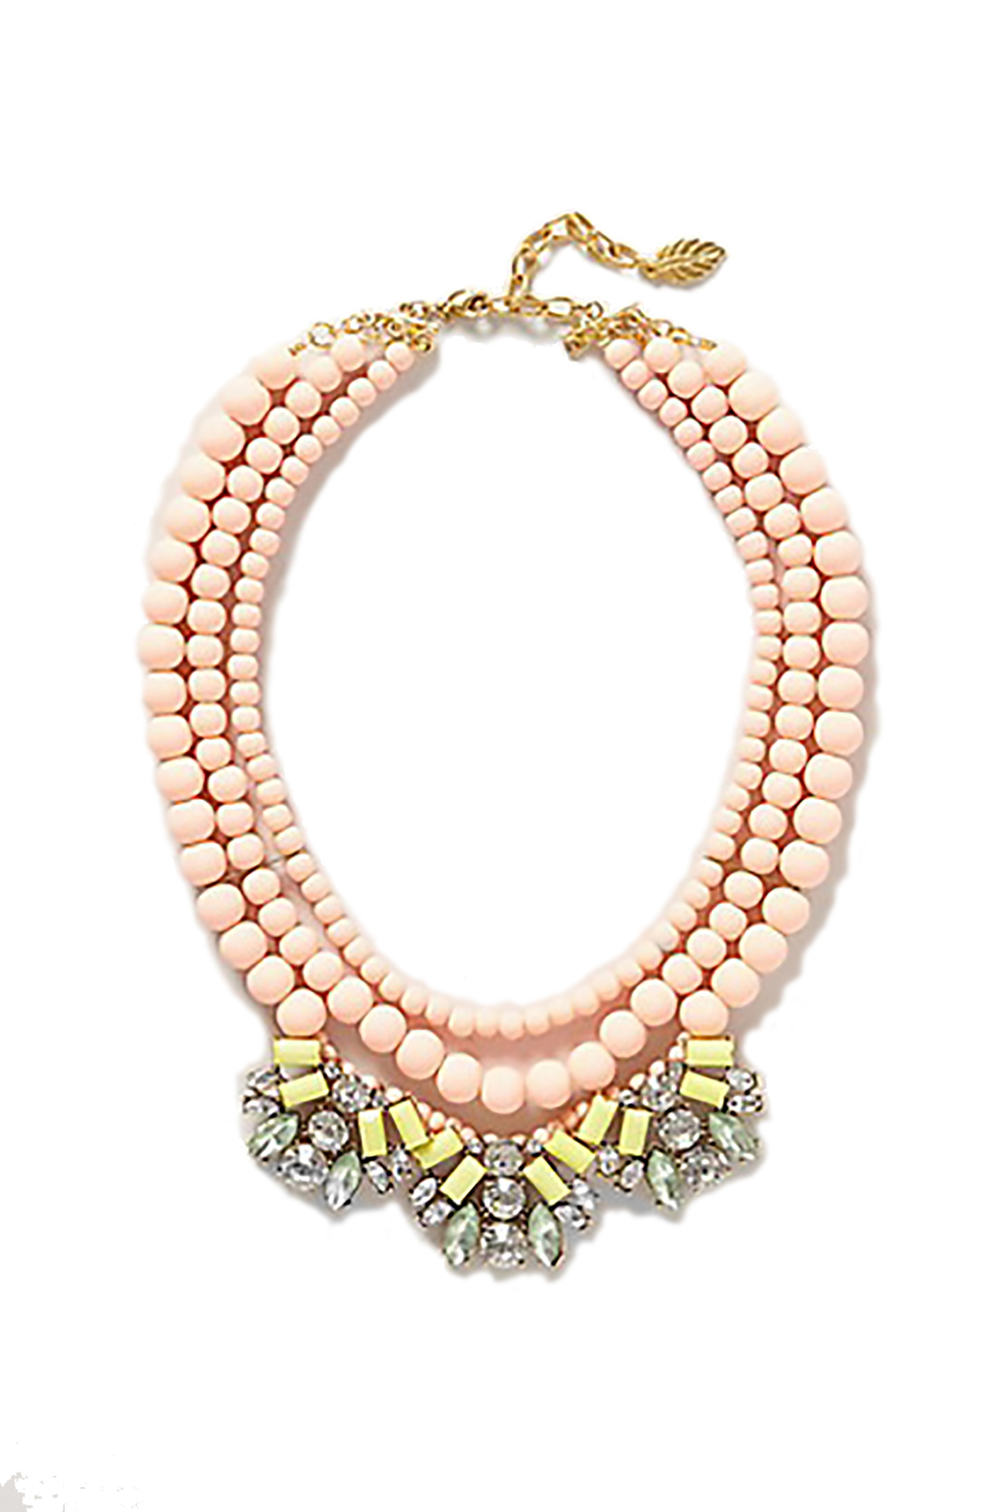 anthropologie boreal bib necklace love yourself 1500 copy.jpg